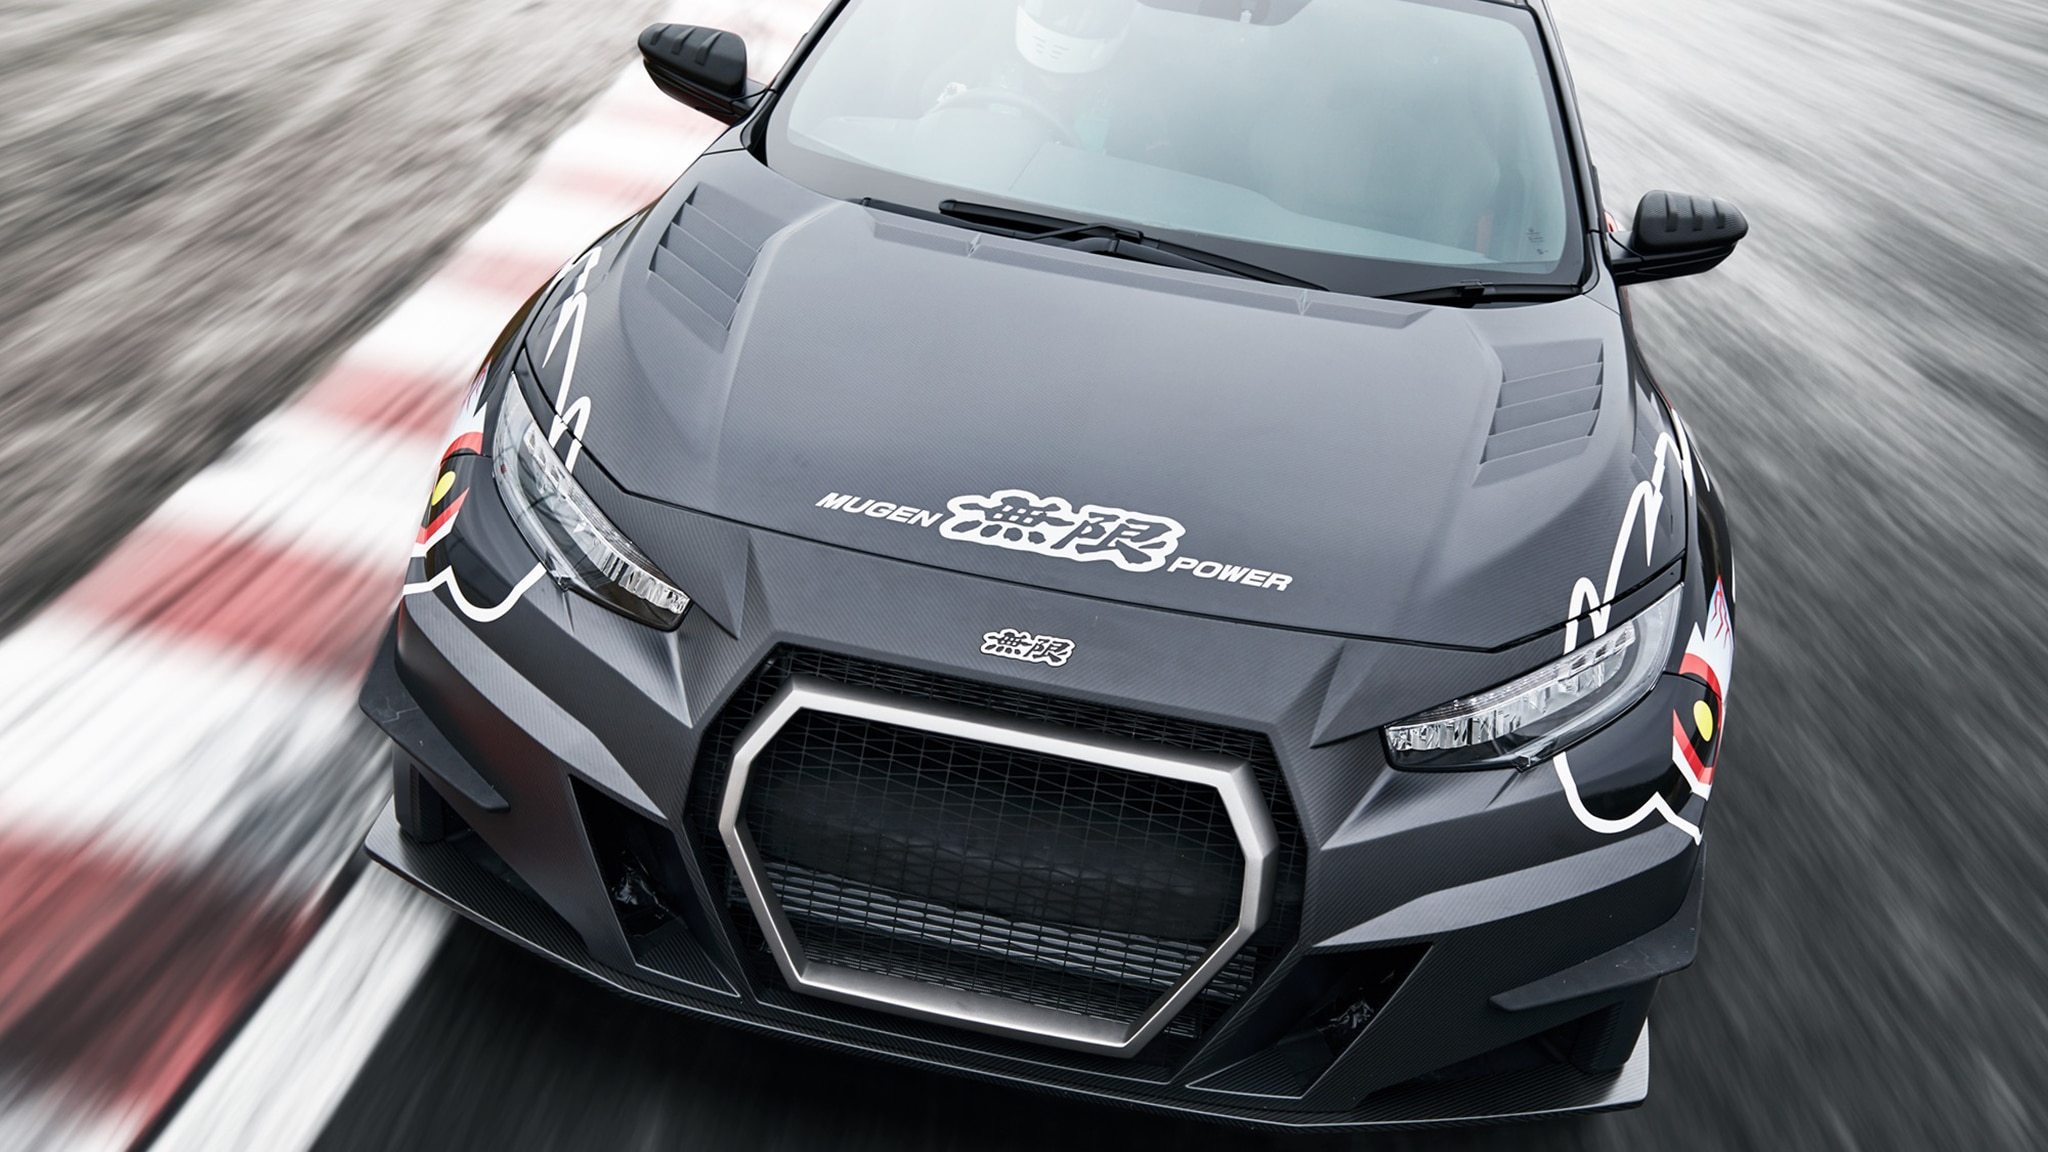 The Mugen RC20GT Cures the Honda Civic Type R's Subtle